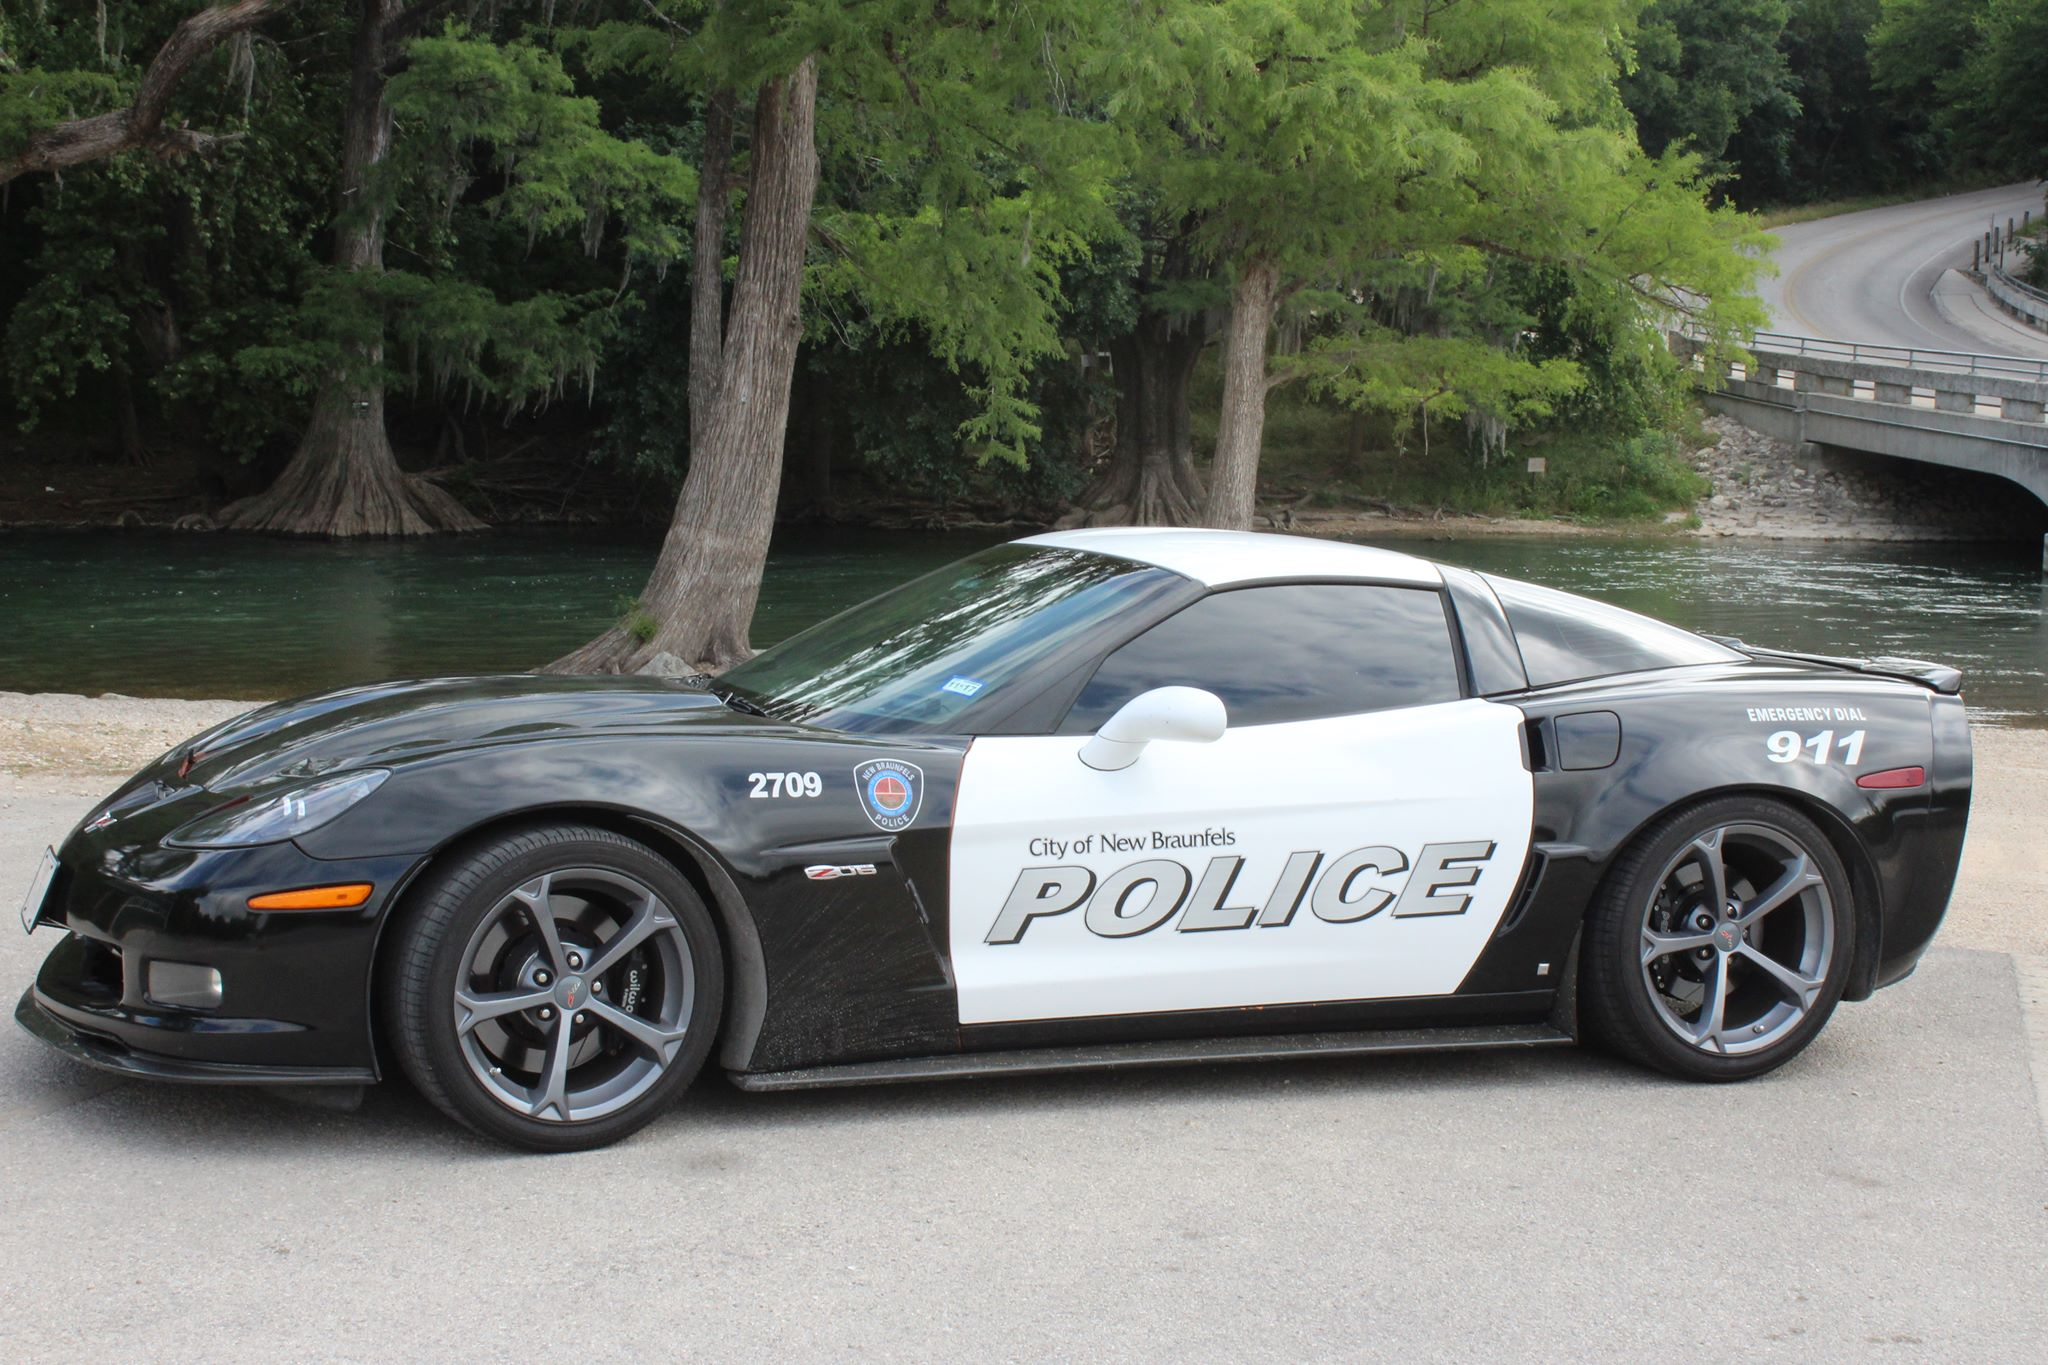 New Braunfels police plan to sell high-profile part of its